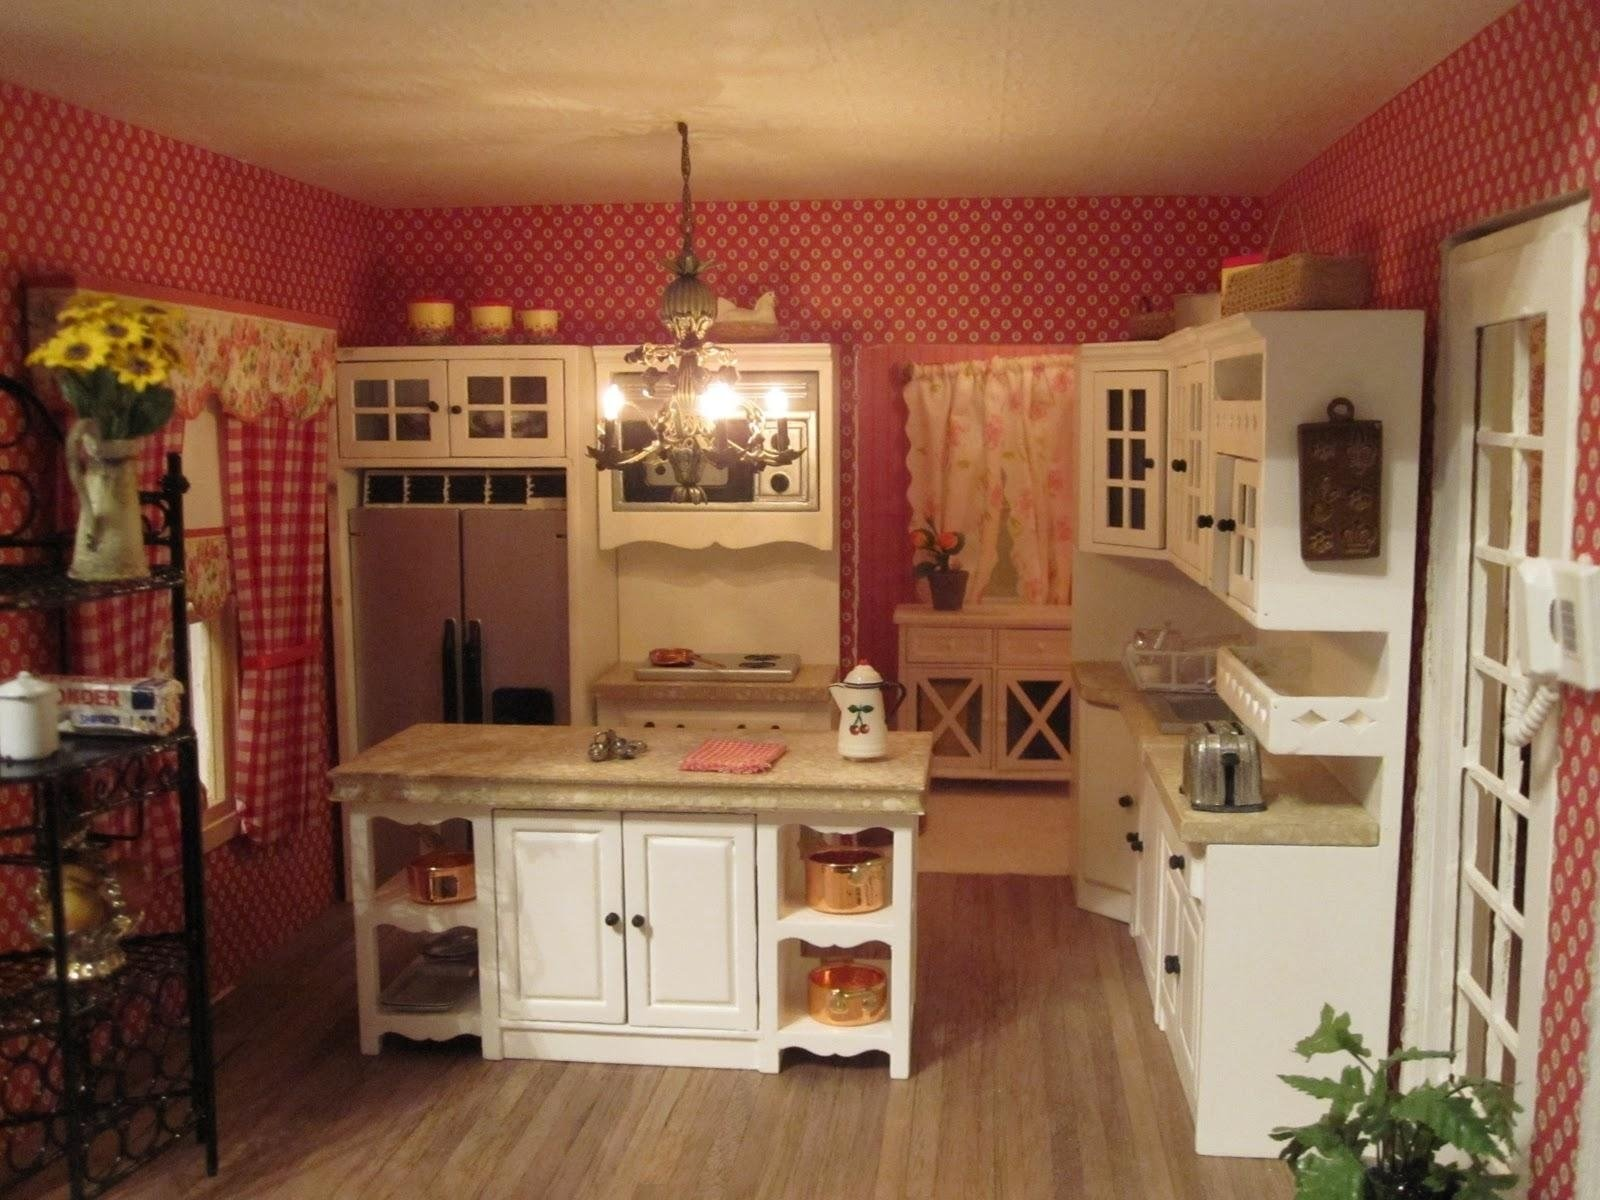 10 Awesome Country Kitchen Ideas On A Budget 2021